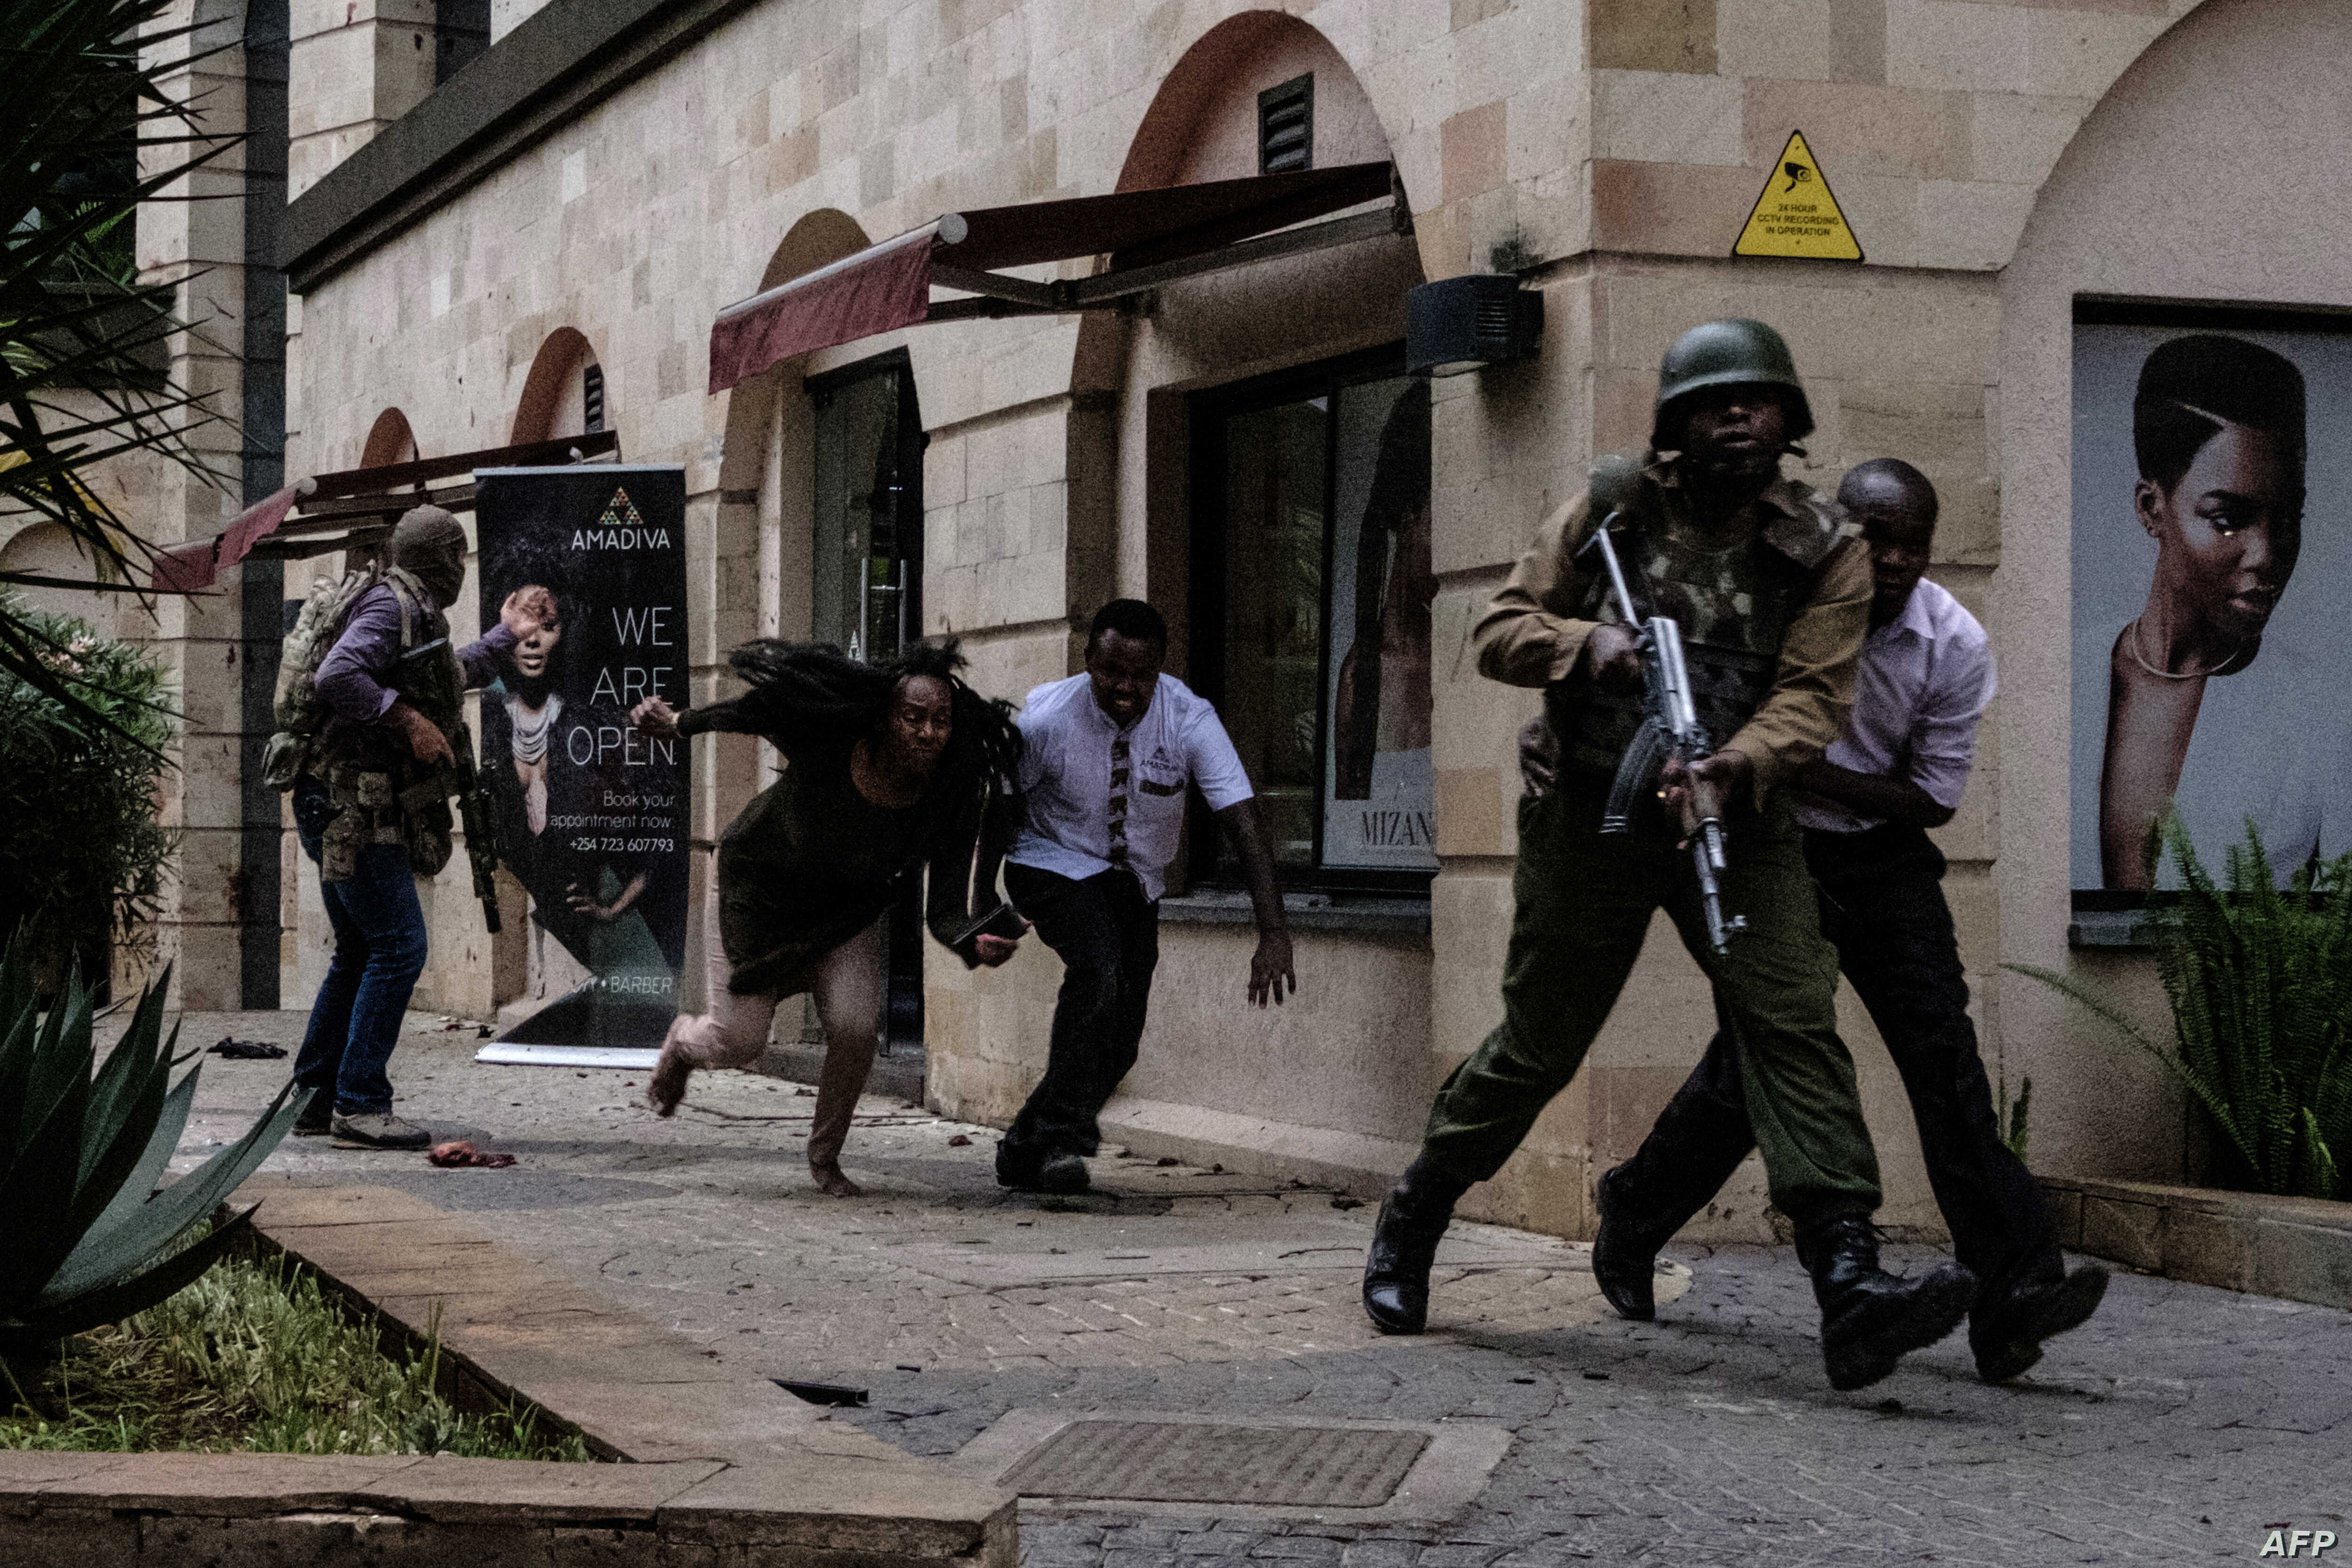 Kenyan security forces help people to escape after a bomb blast at DusitD2 hotel in Nairobi, Kenya, Jan. 15, 2019. A huge blast followed by a gun battle rocked an upmarket hotel and office complex in Nairobi, causing casualties, in an attack claimed ...